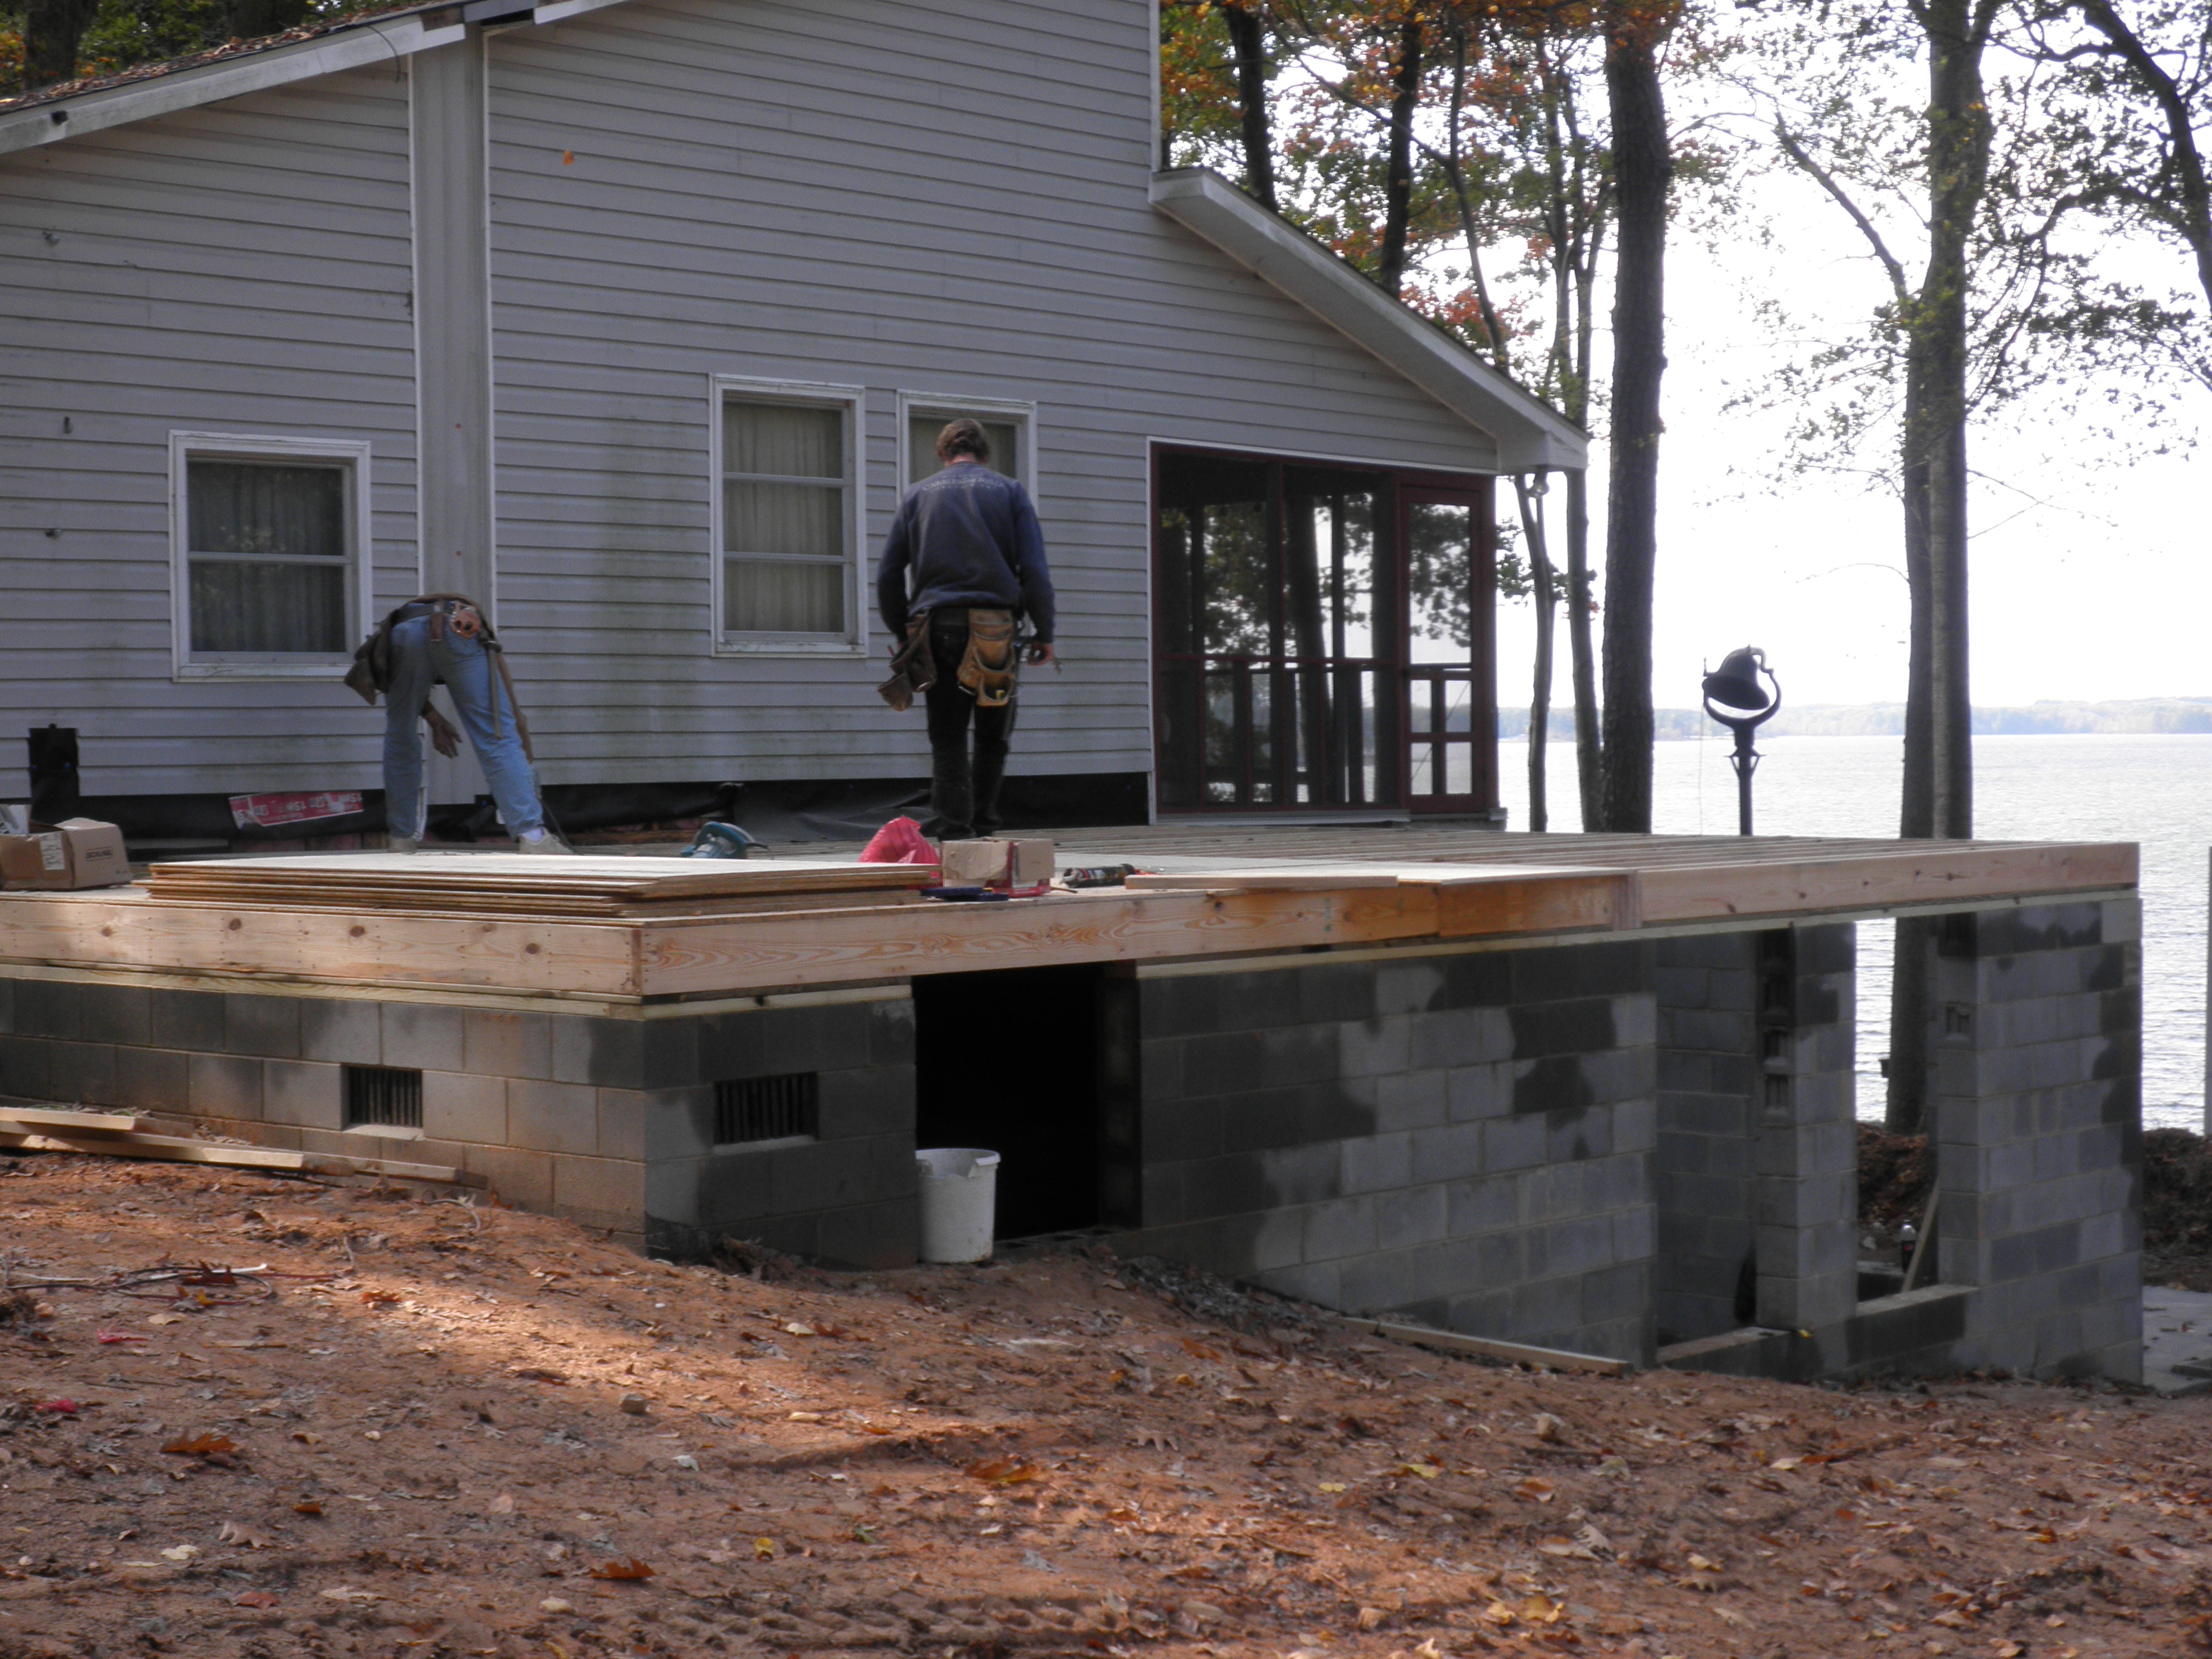 Greyhouse Inc Raleigh Home Remodeling Contractor Raleigh Nc 27603 Angies List